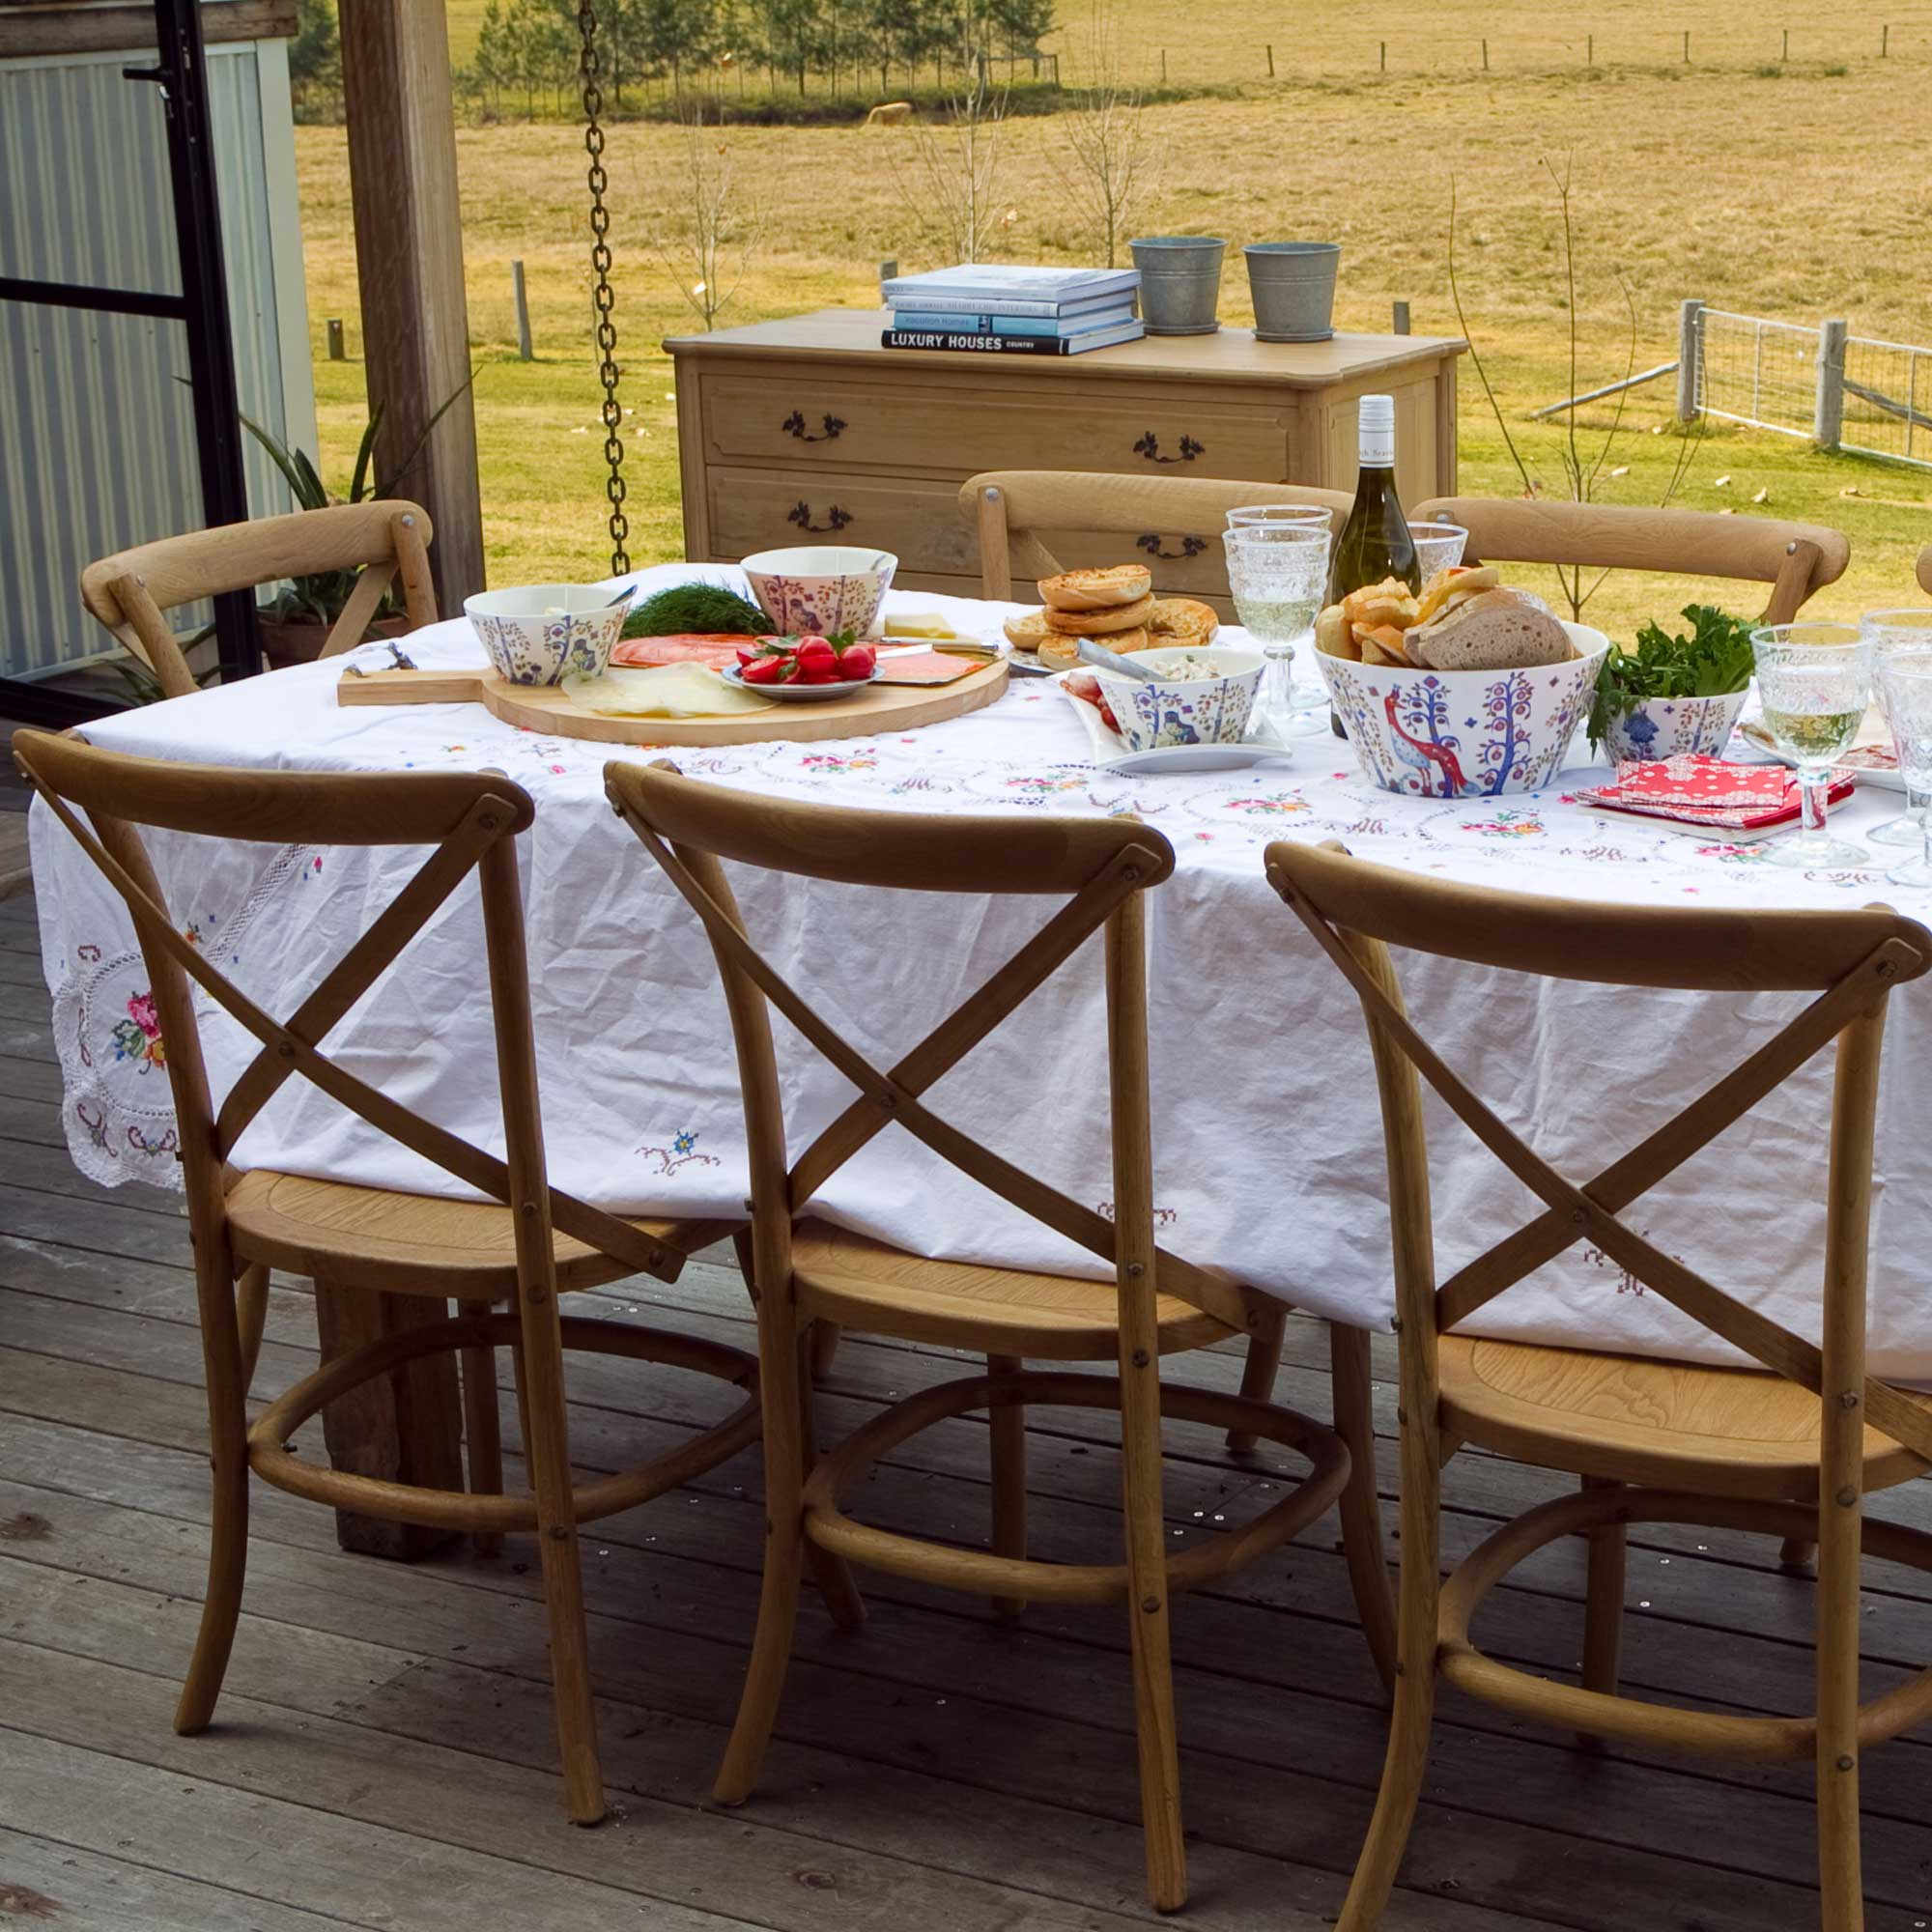 HAMPTONS-CAFE-CHAIR-WOOD-SEAT-STYLED